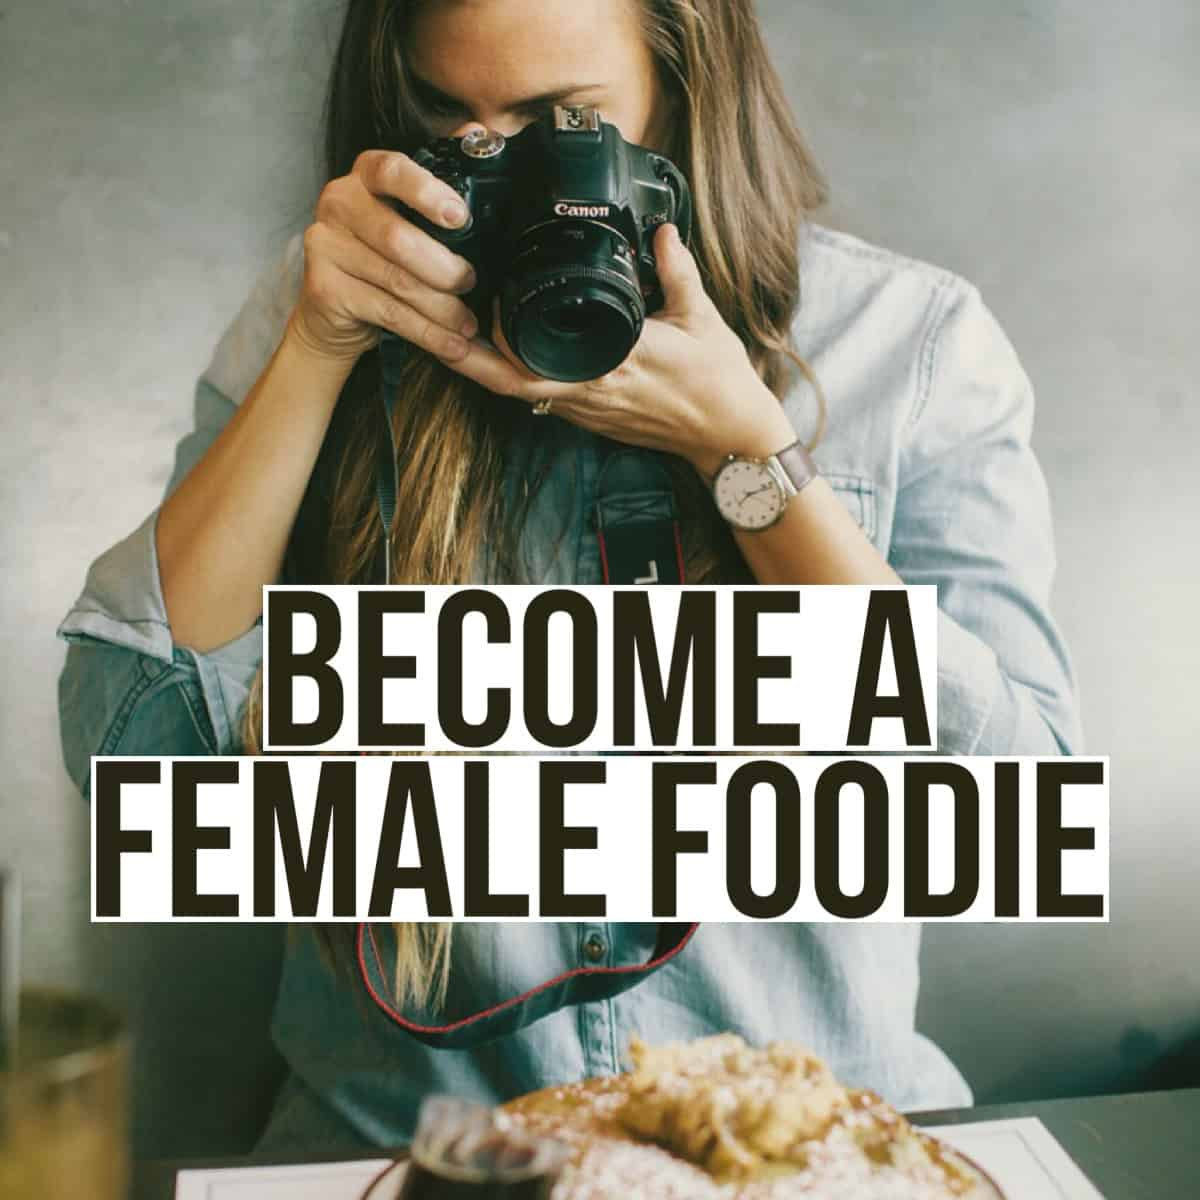 BECOME A FEMALE FOODIE